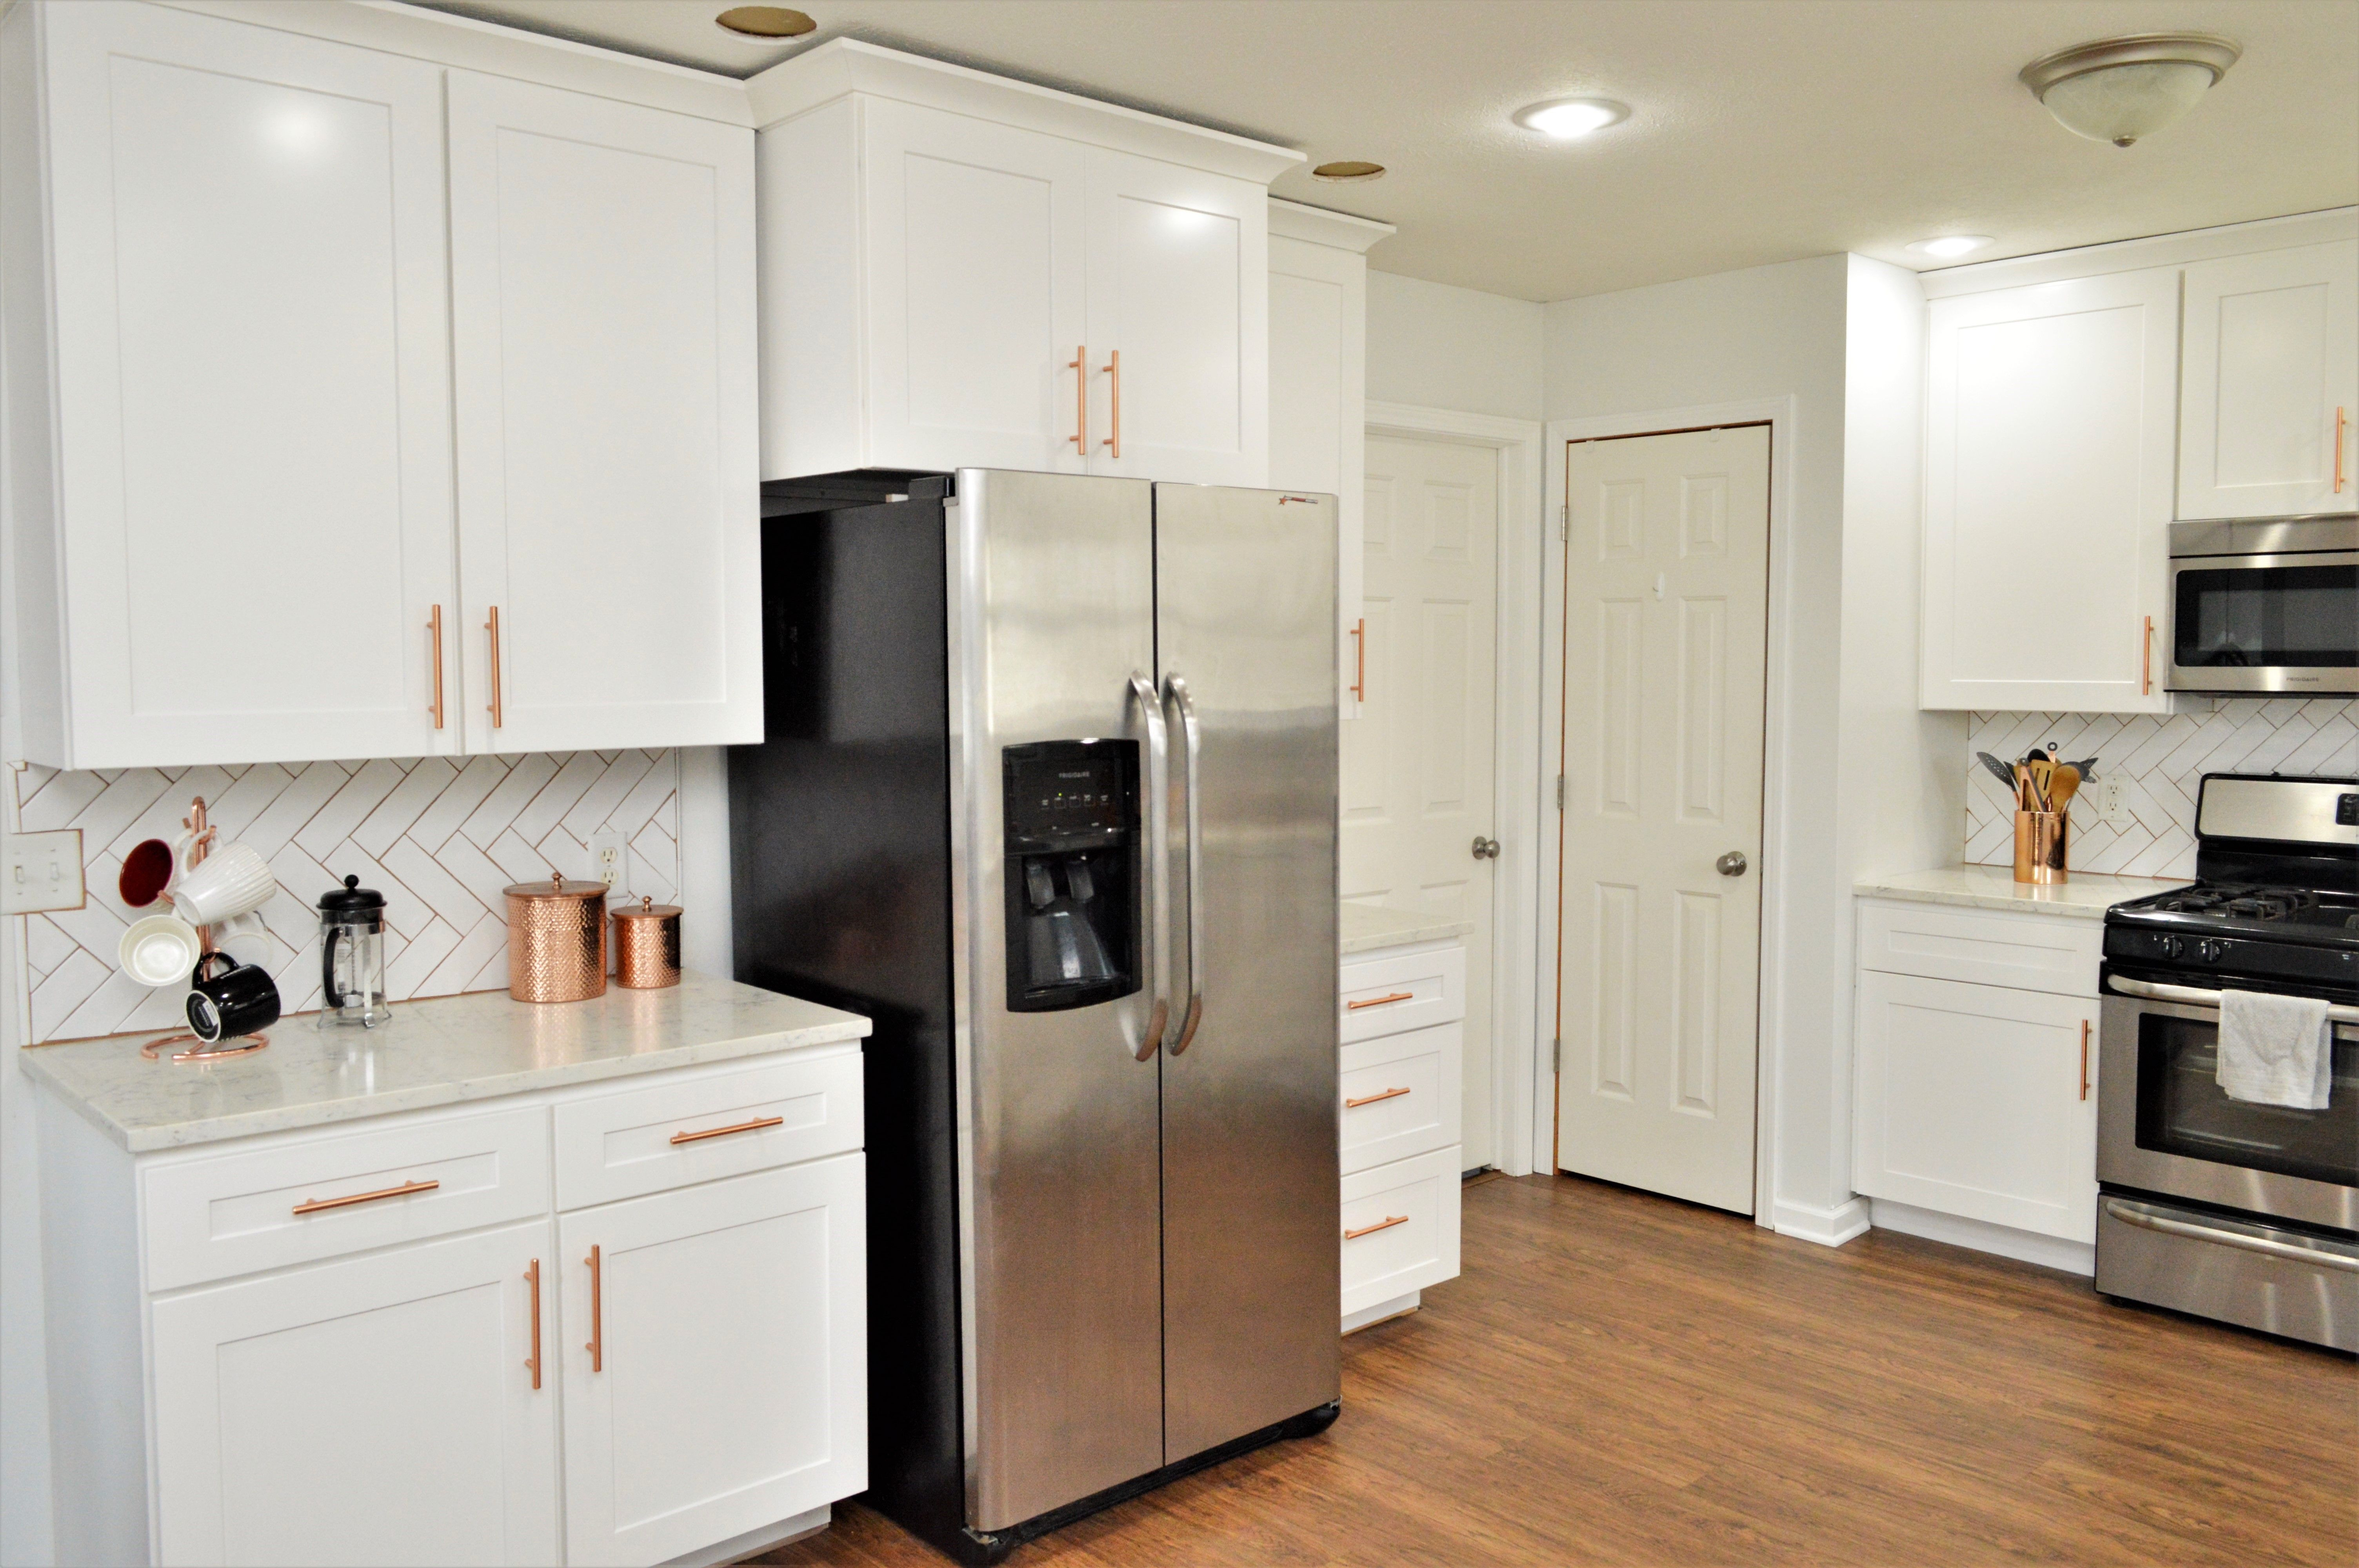 Bailey S Cabinets Baileytown Usa Select Maple White Finish Jamestown Door Style In 2020 Kitchen Cabinetry Cabinet Kitchen